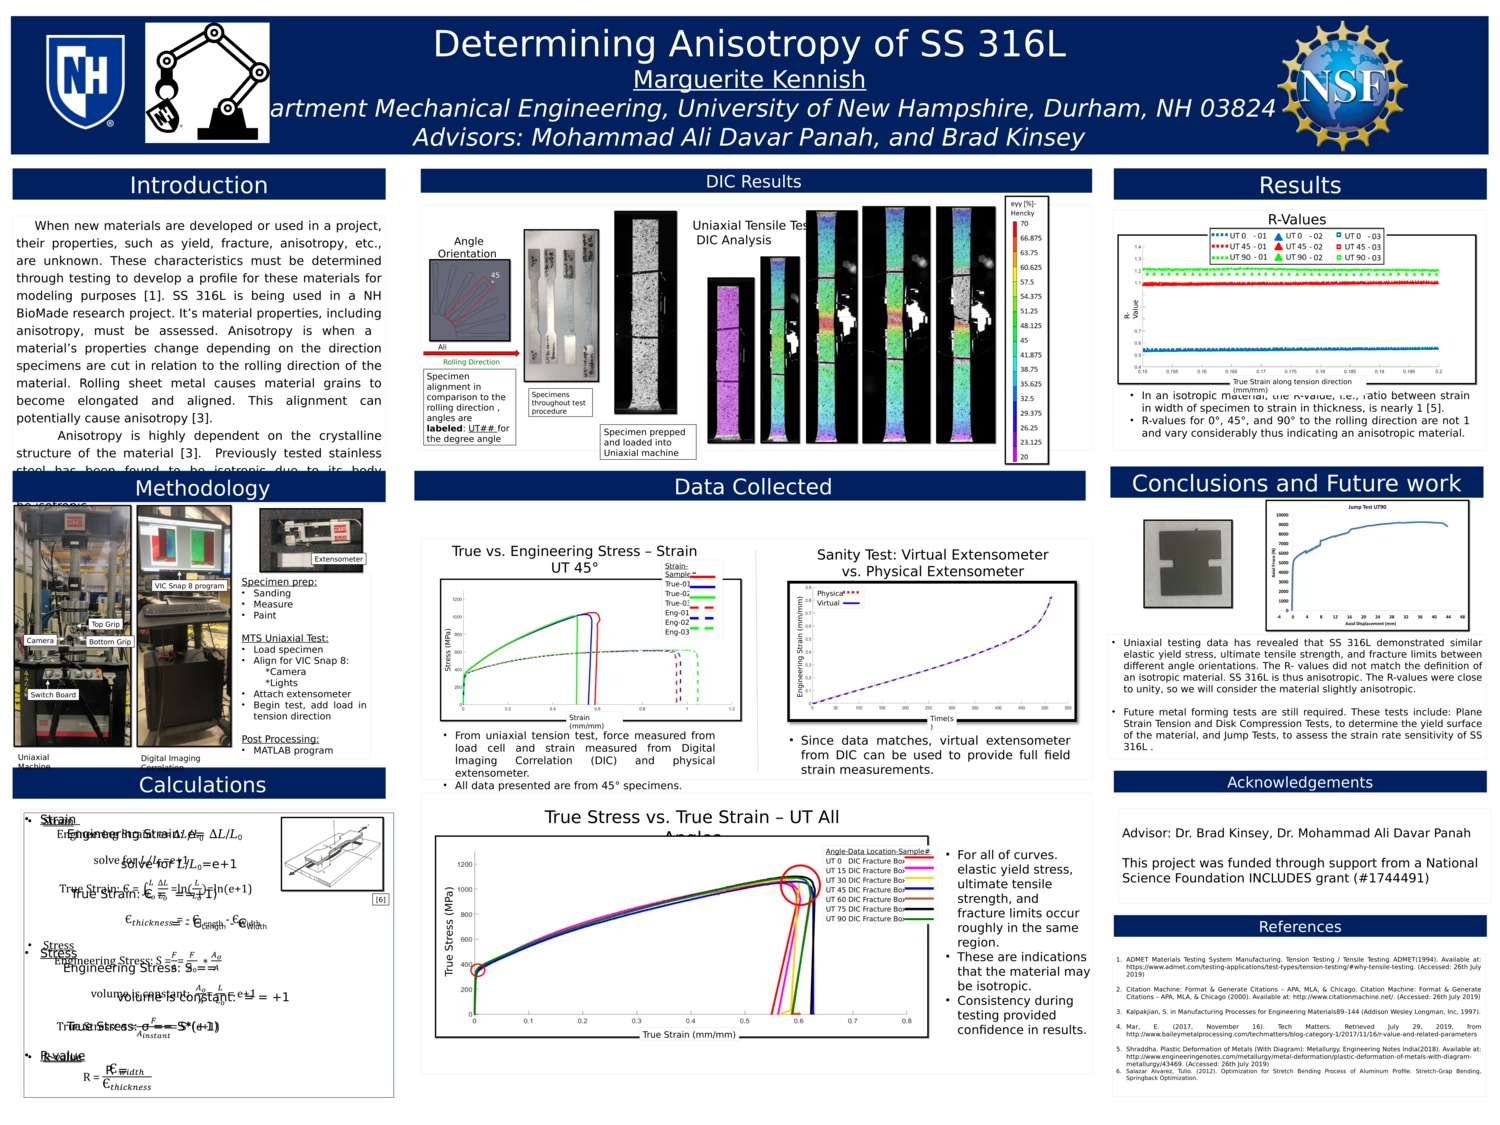 Determining Anisotropy Of Ss316l by mrk1021